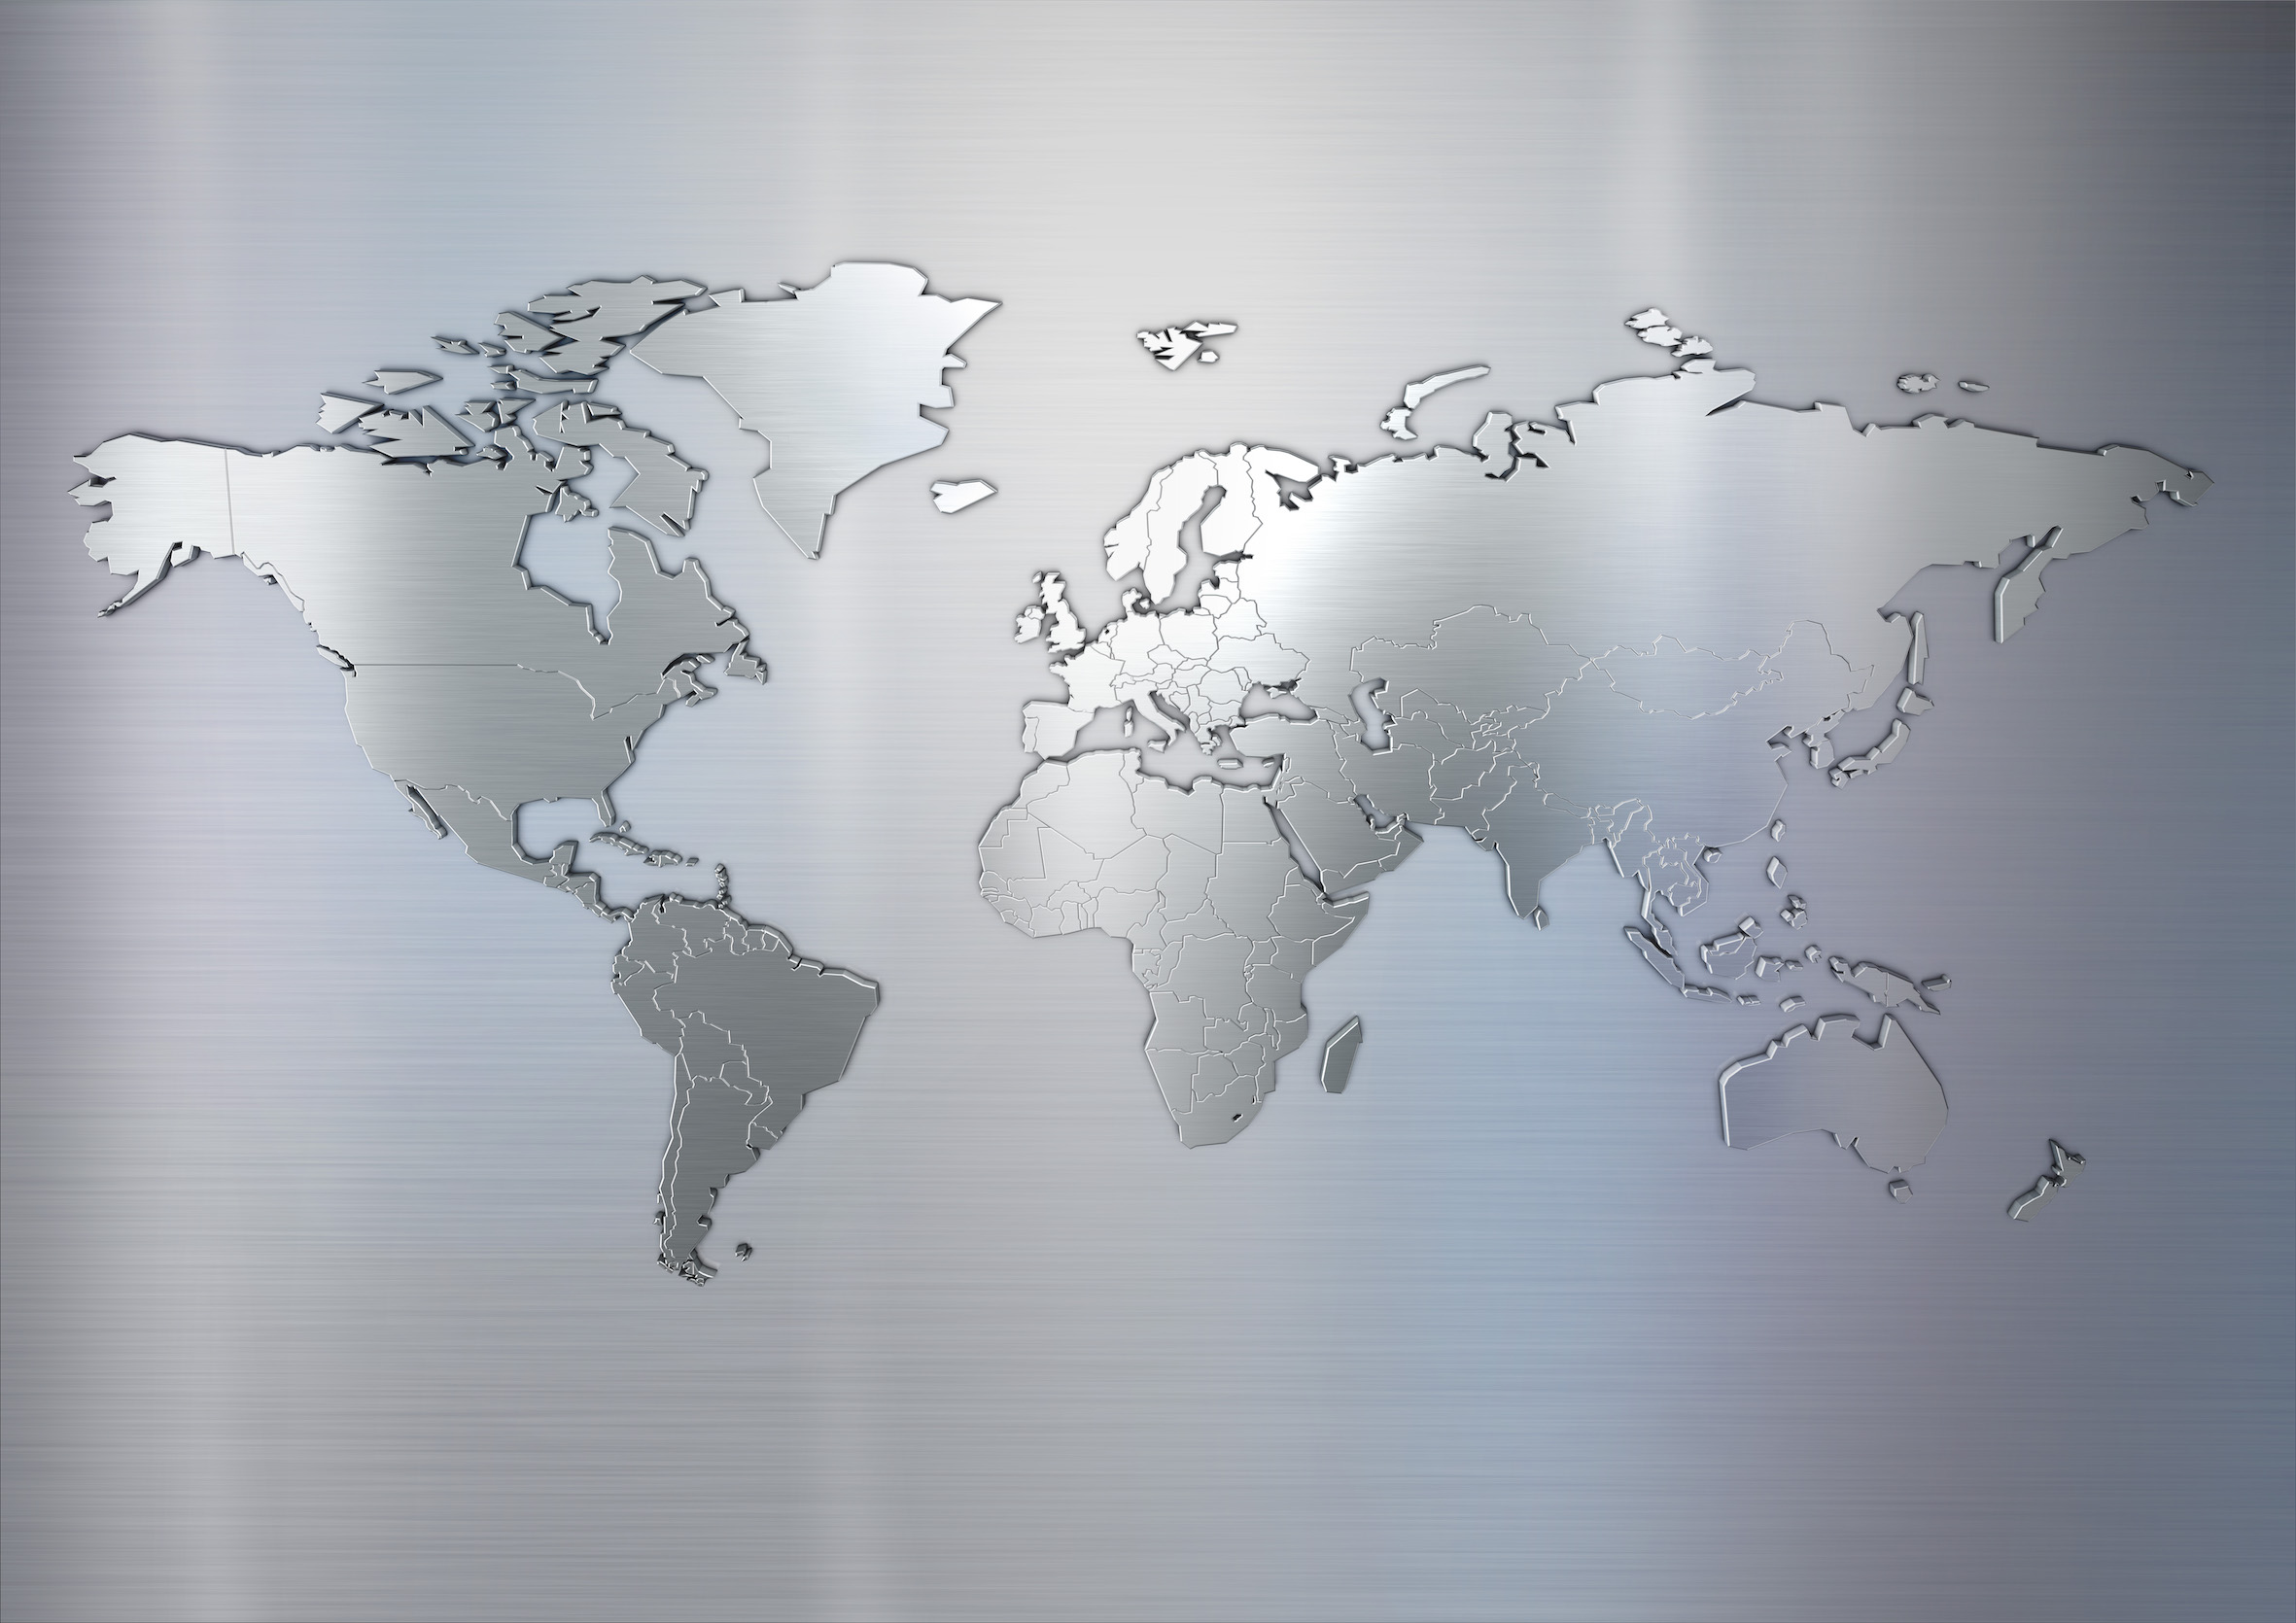 World map made of metal texture